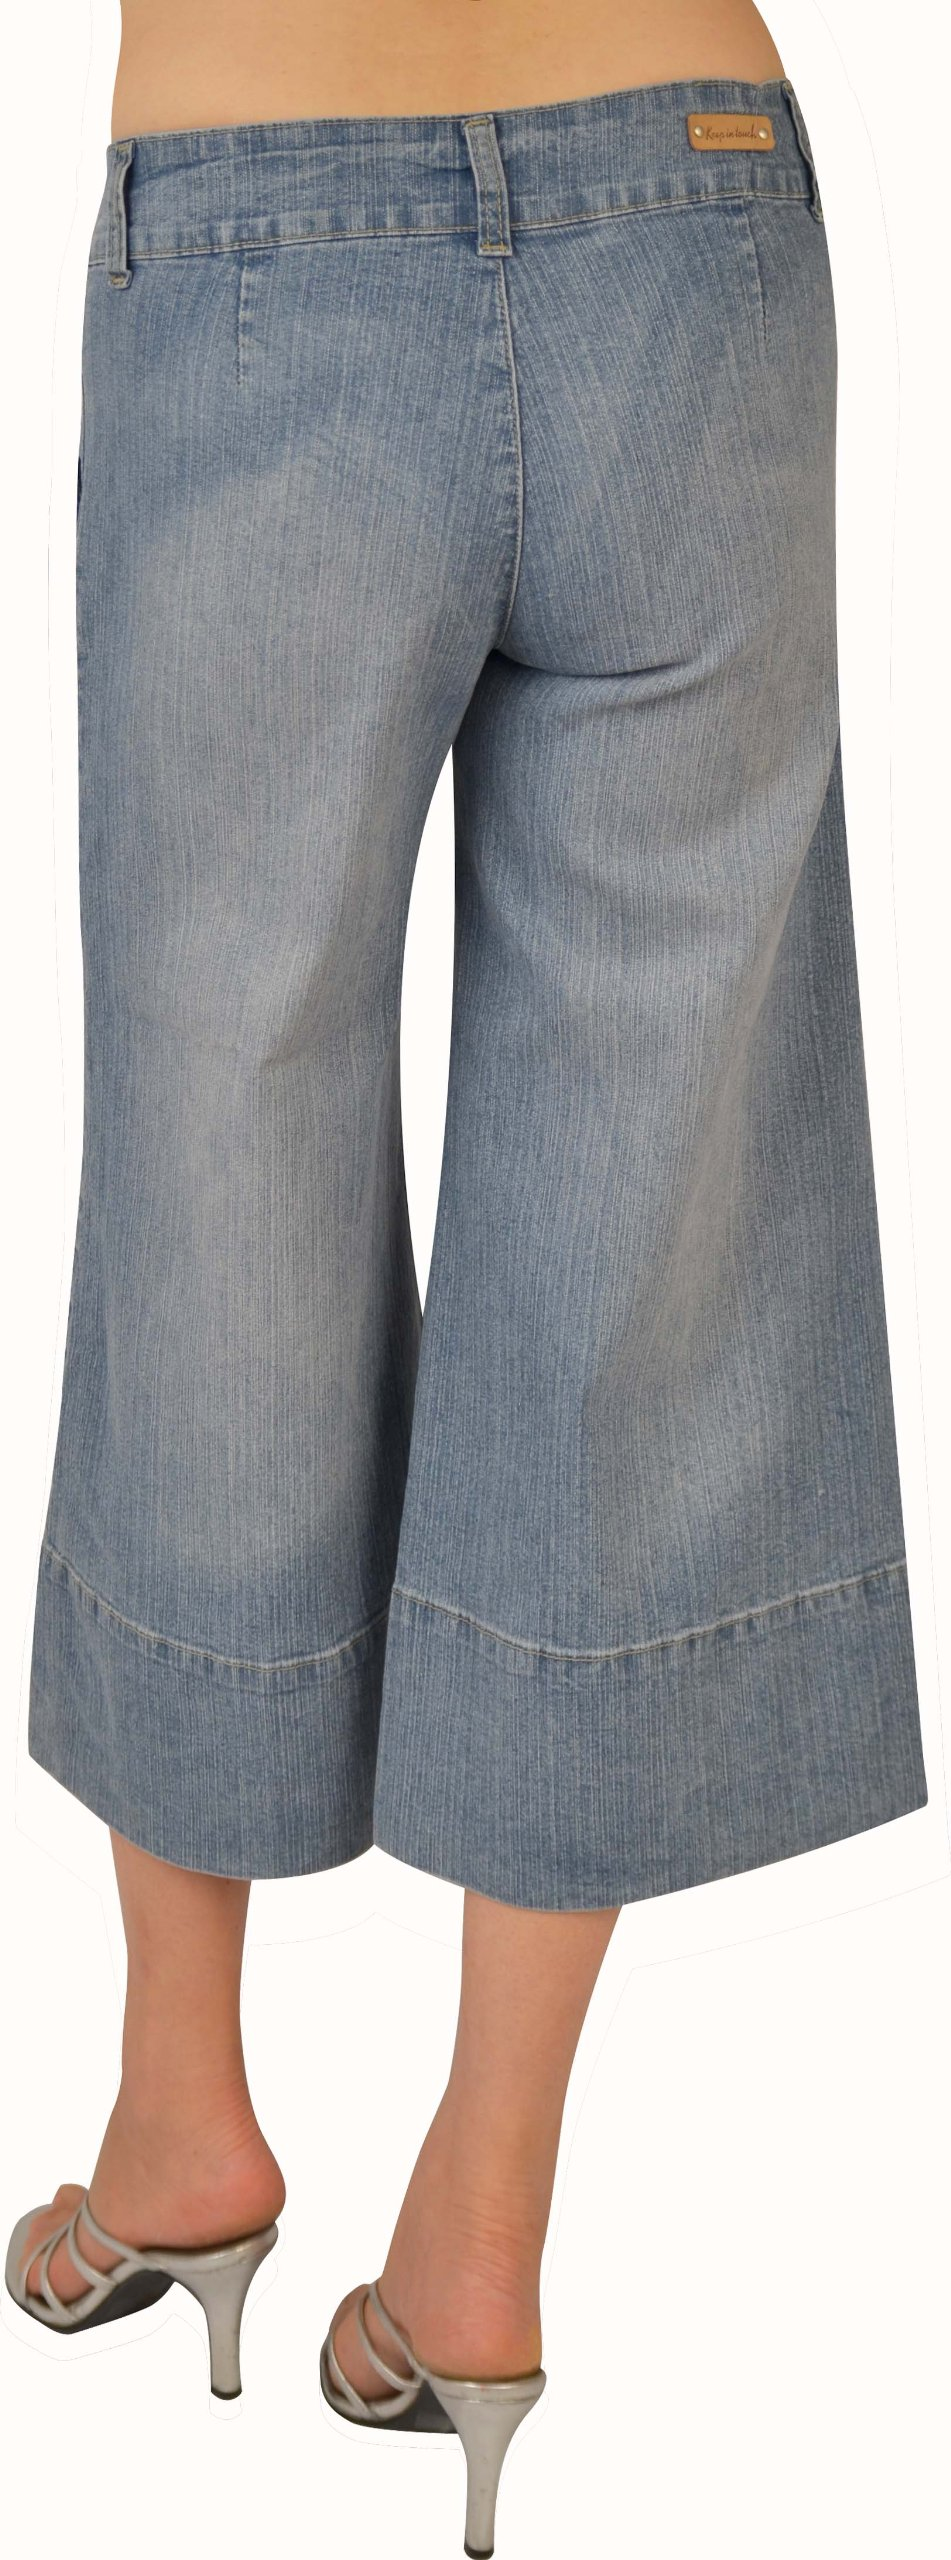 Kit Womens Lt. Sand Blue Stretch Denim Gaucho #L217 Size: 9 by KEEP IN TOUCH (Image #2)